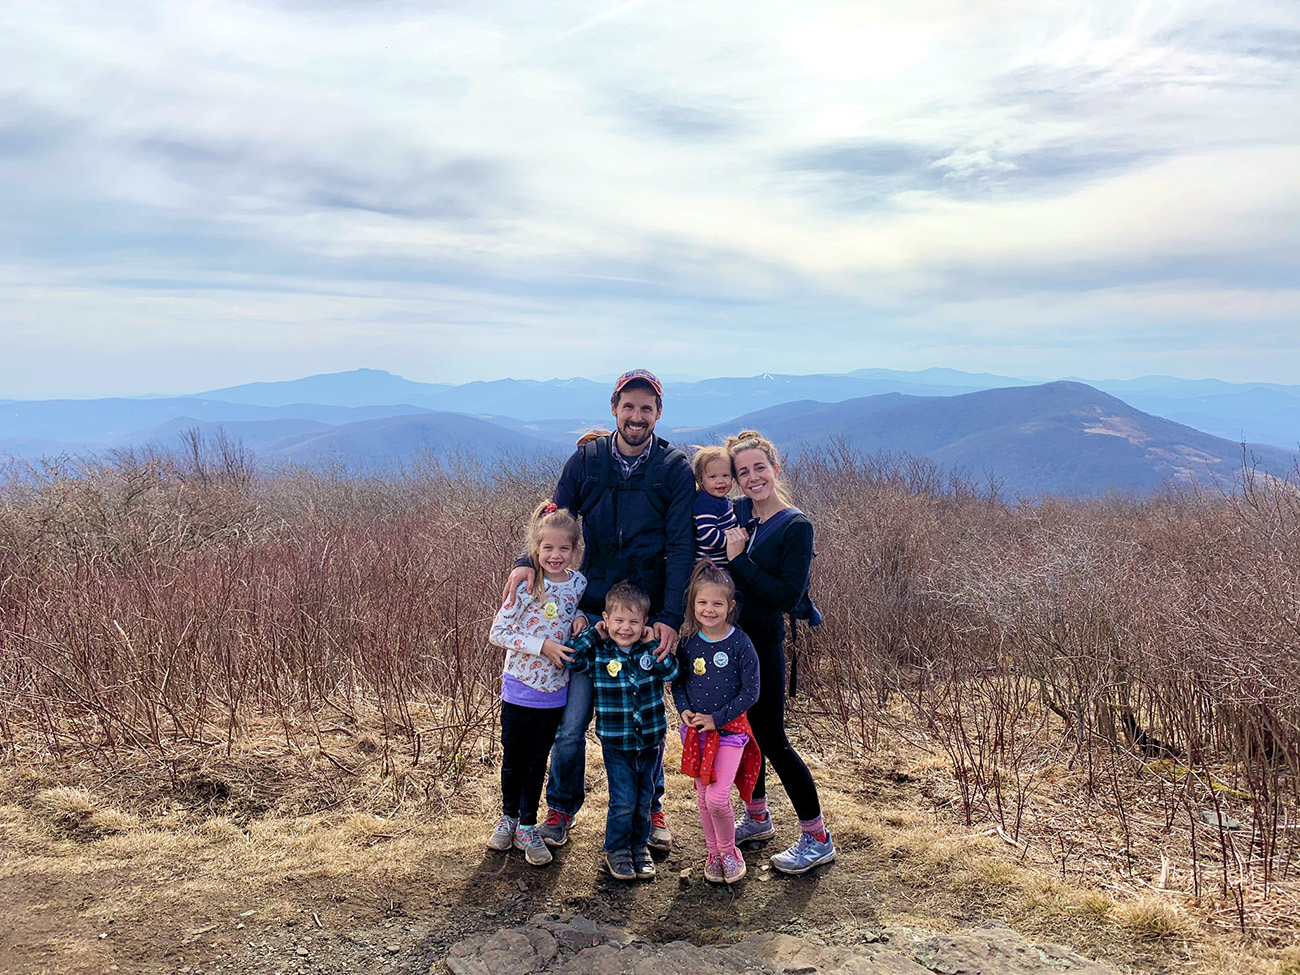 Here's how a family of 6 visited 41 North Carolina State Parks in 10 months on a $246 budget